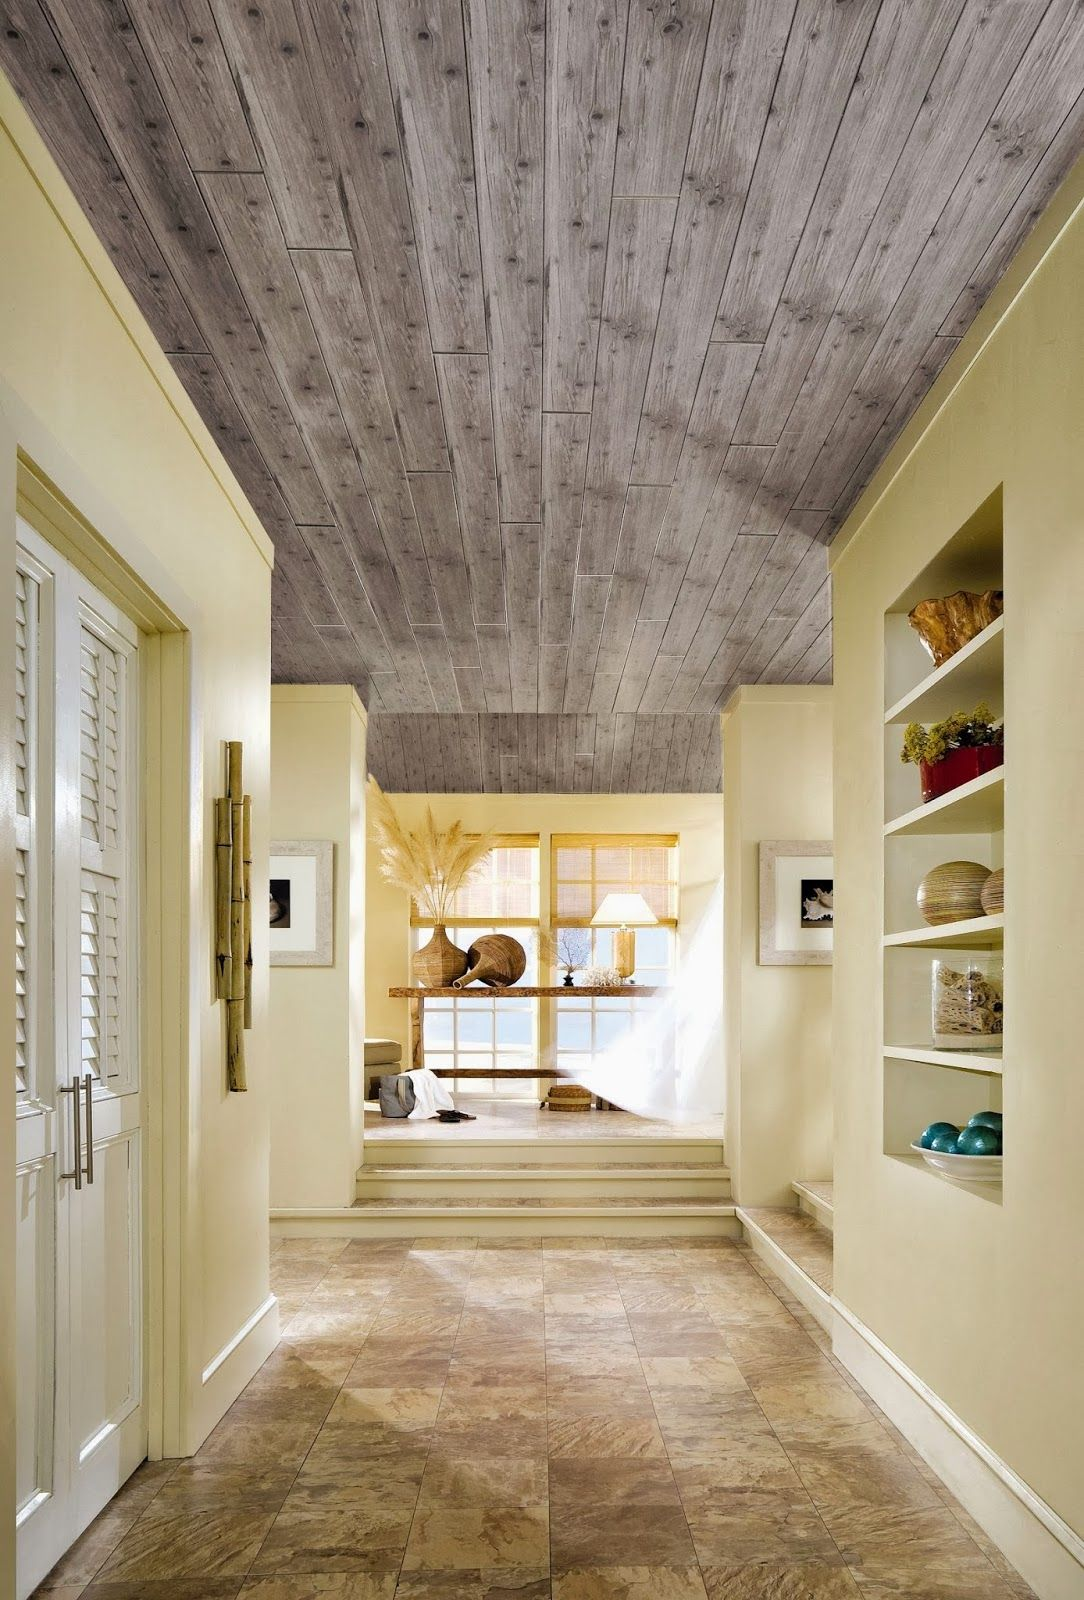 Wood Ceiling Hide Popcorn Ceilings Acoustic Ceiling